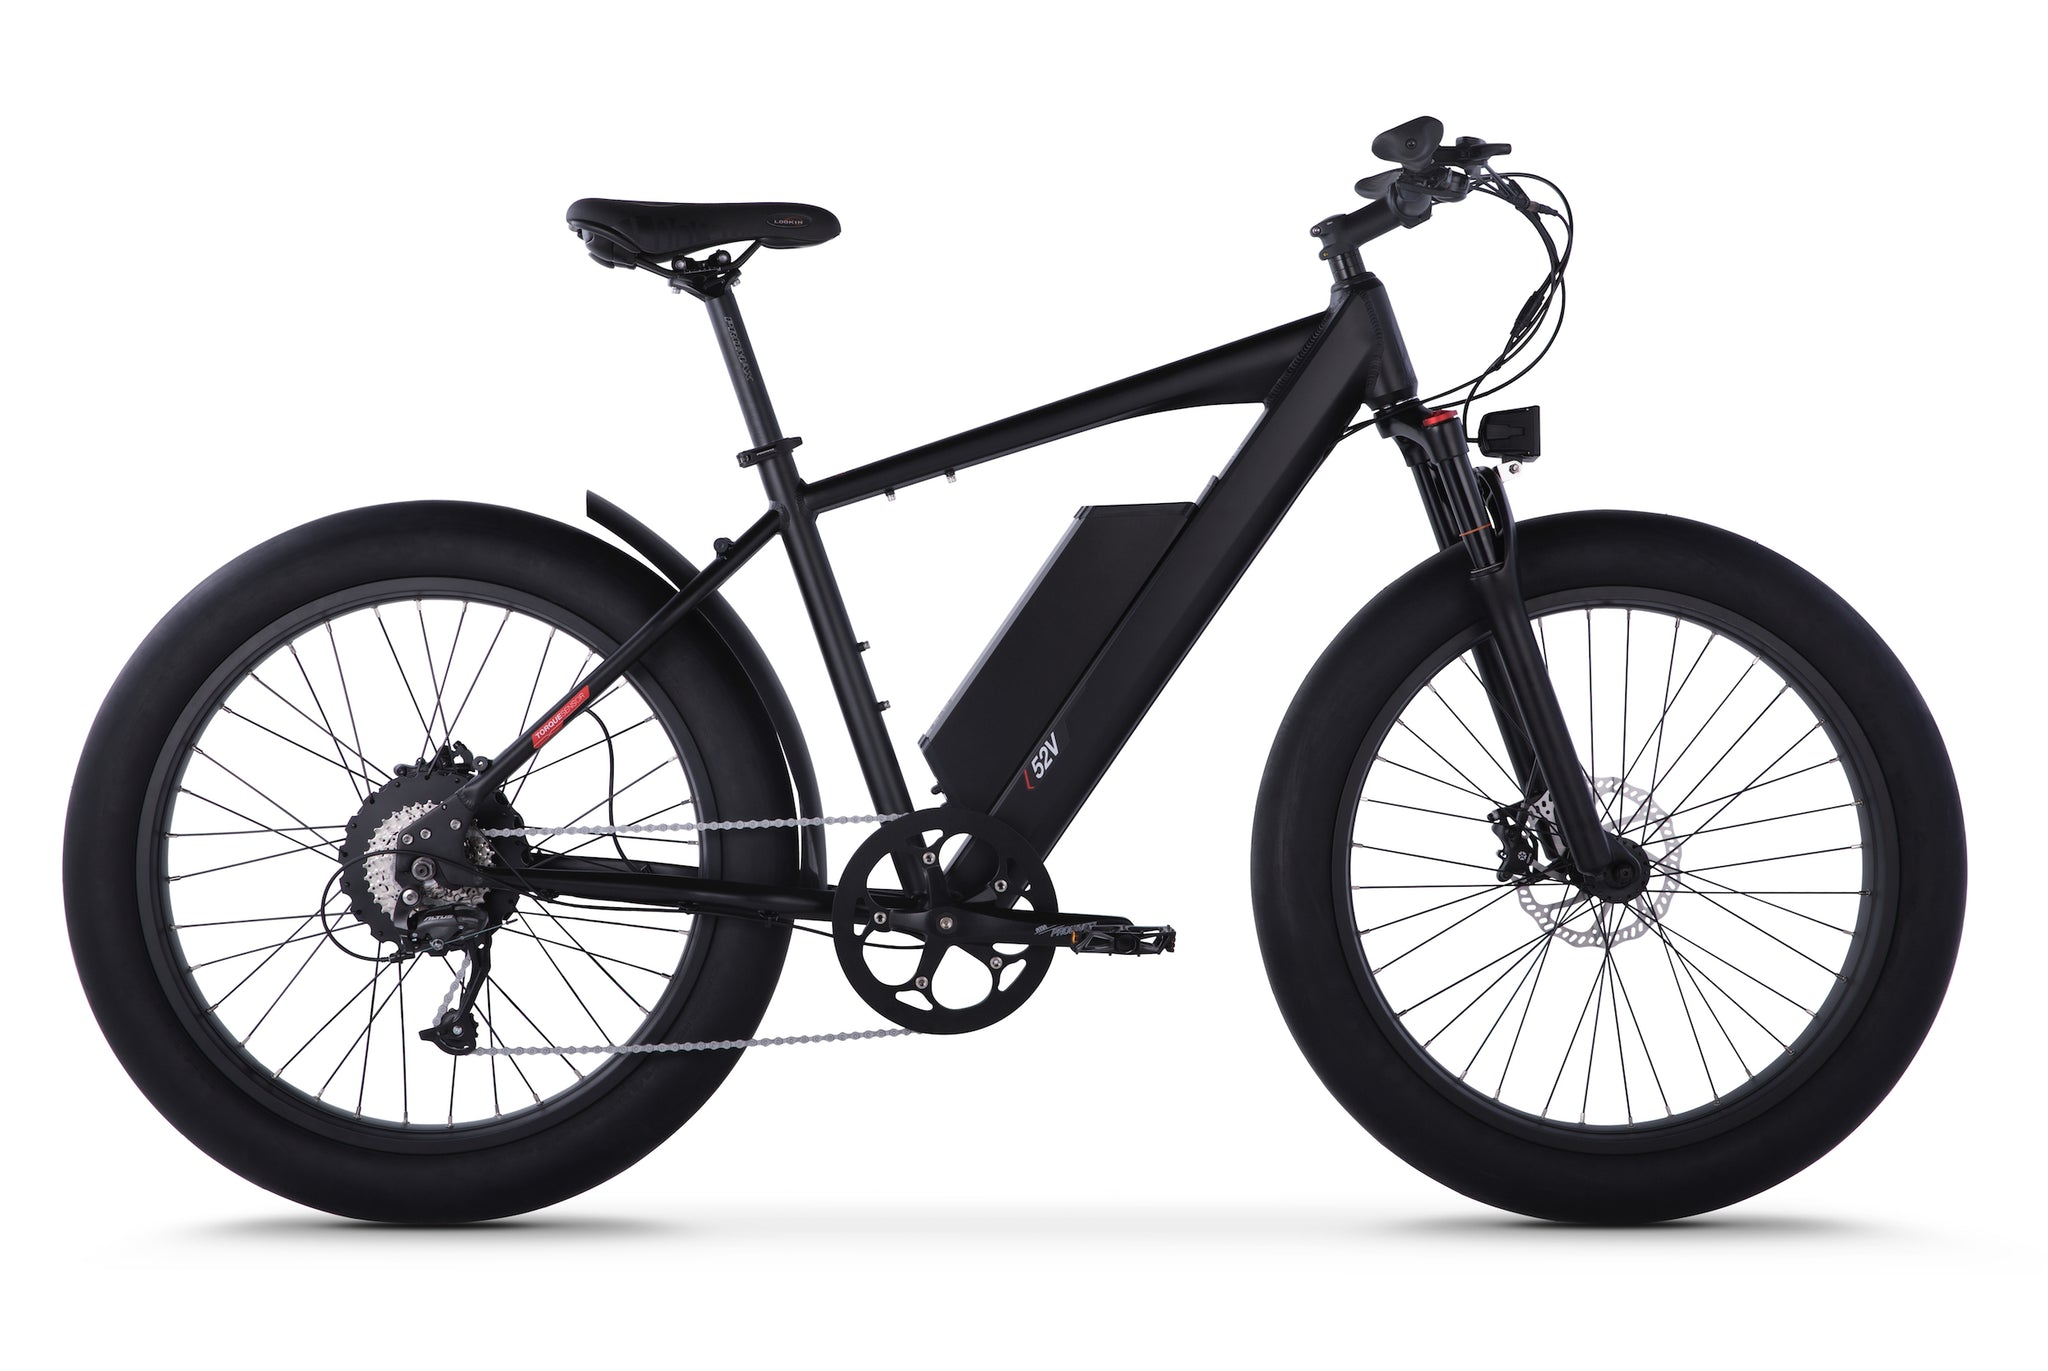 HyperFat 1100W - Best Electric Fat Bike - Juiced Bikes